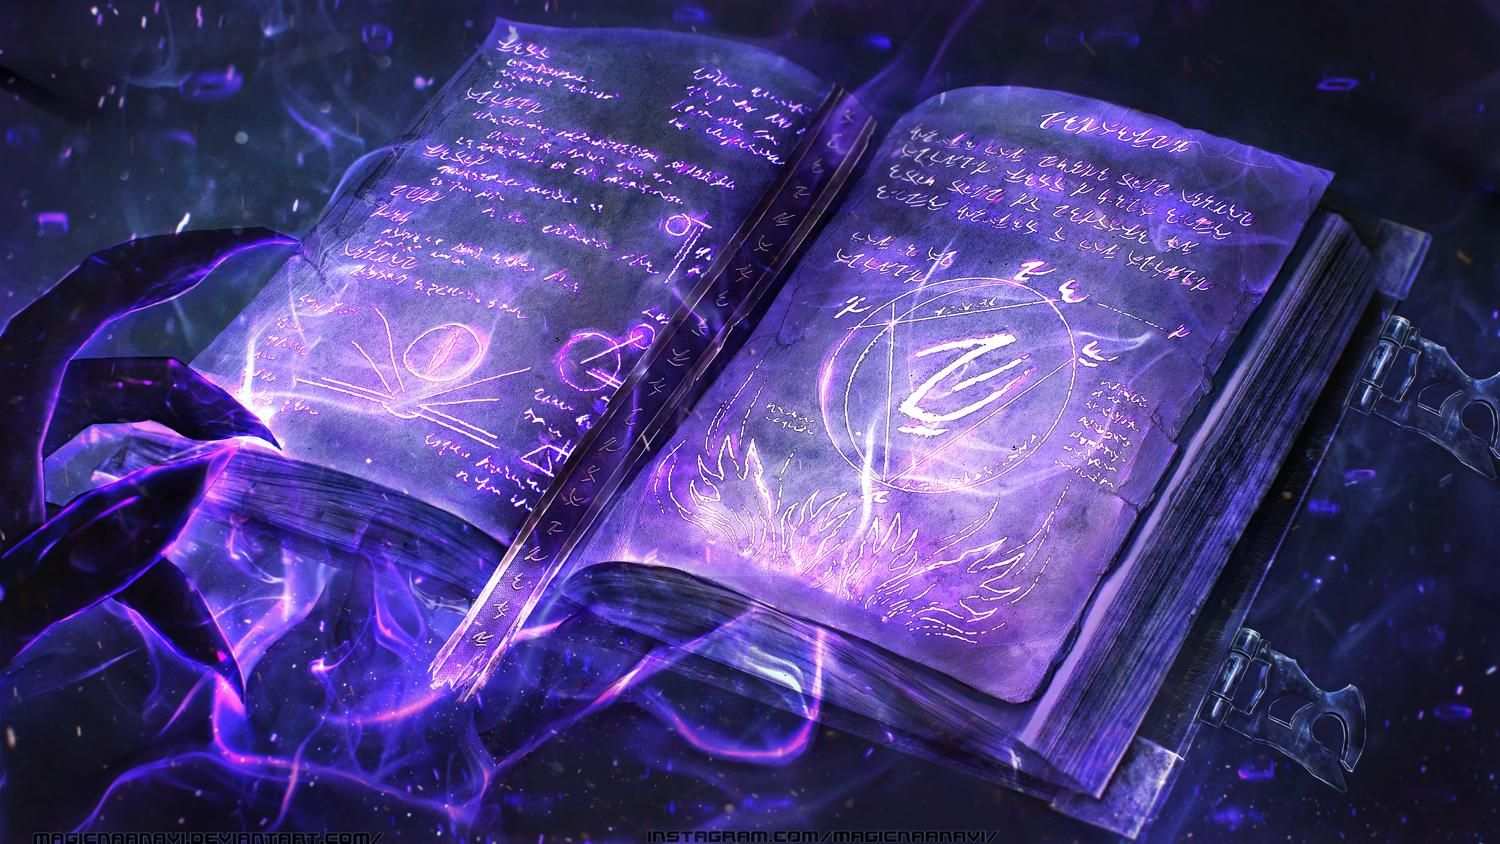 Pin By Jose Augusto On Fantasy Magic Book Magic Aesthetic Magical Book